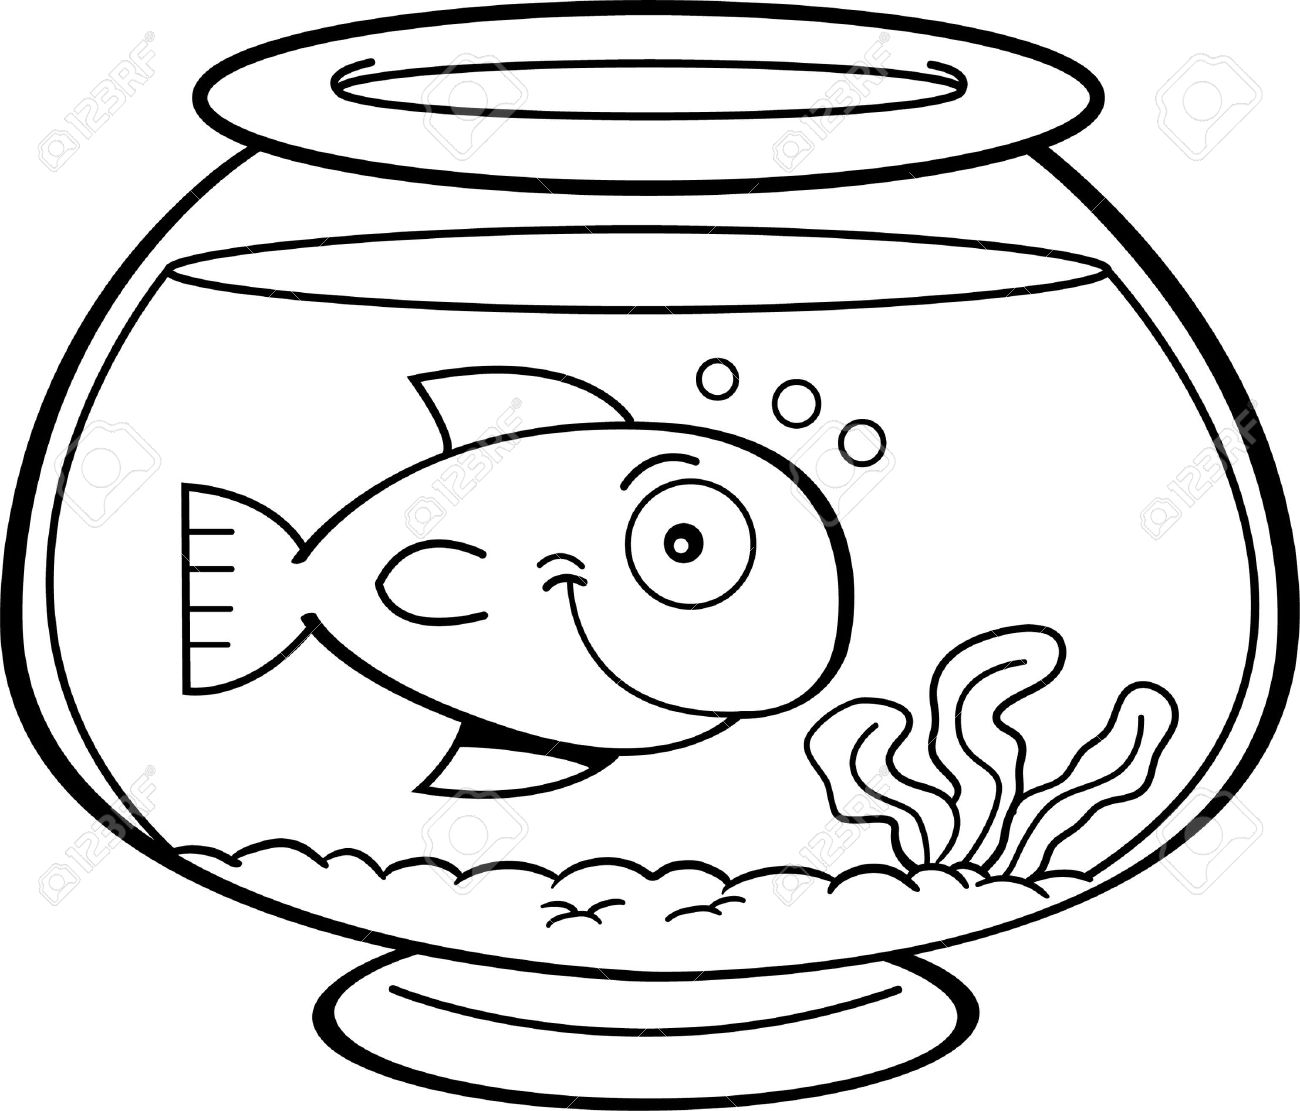 Black and white illustration of a fish in a fish bowl.